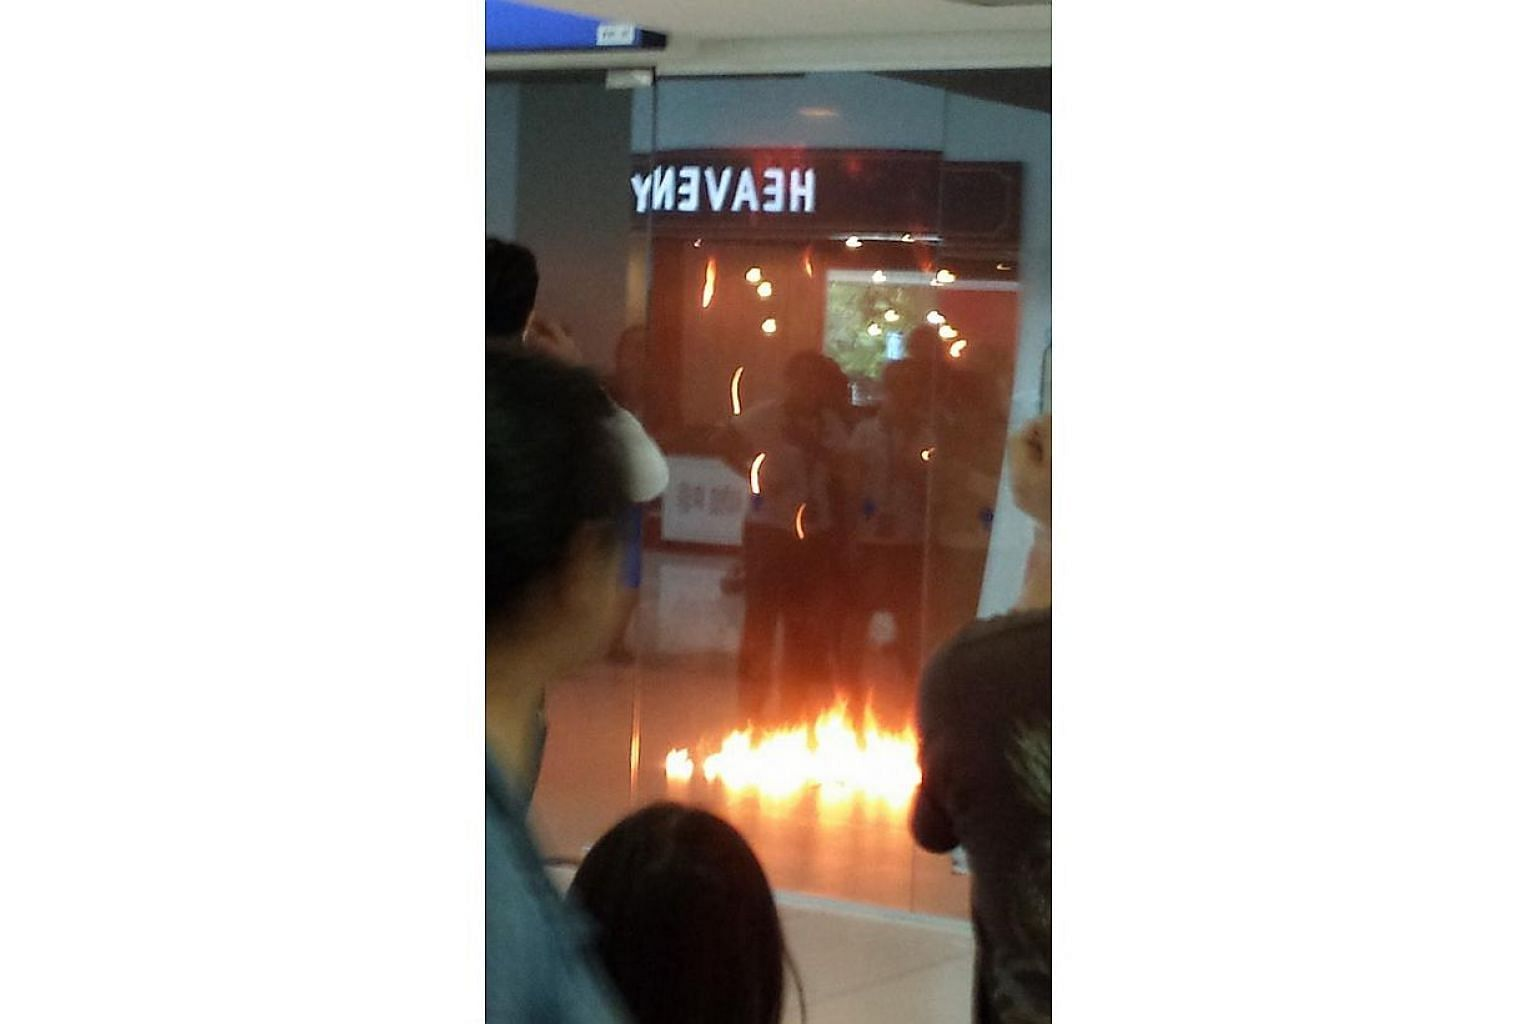 A POSB branch in Rivervale Plaza in Sengkang caught fire on Sunday afternoon. -- PHOTO: STOMP